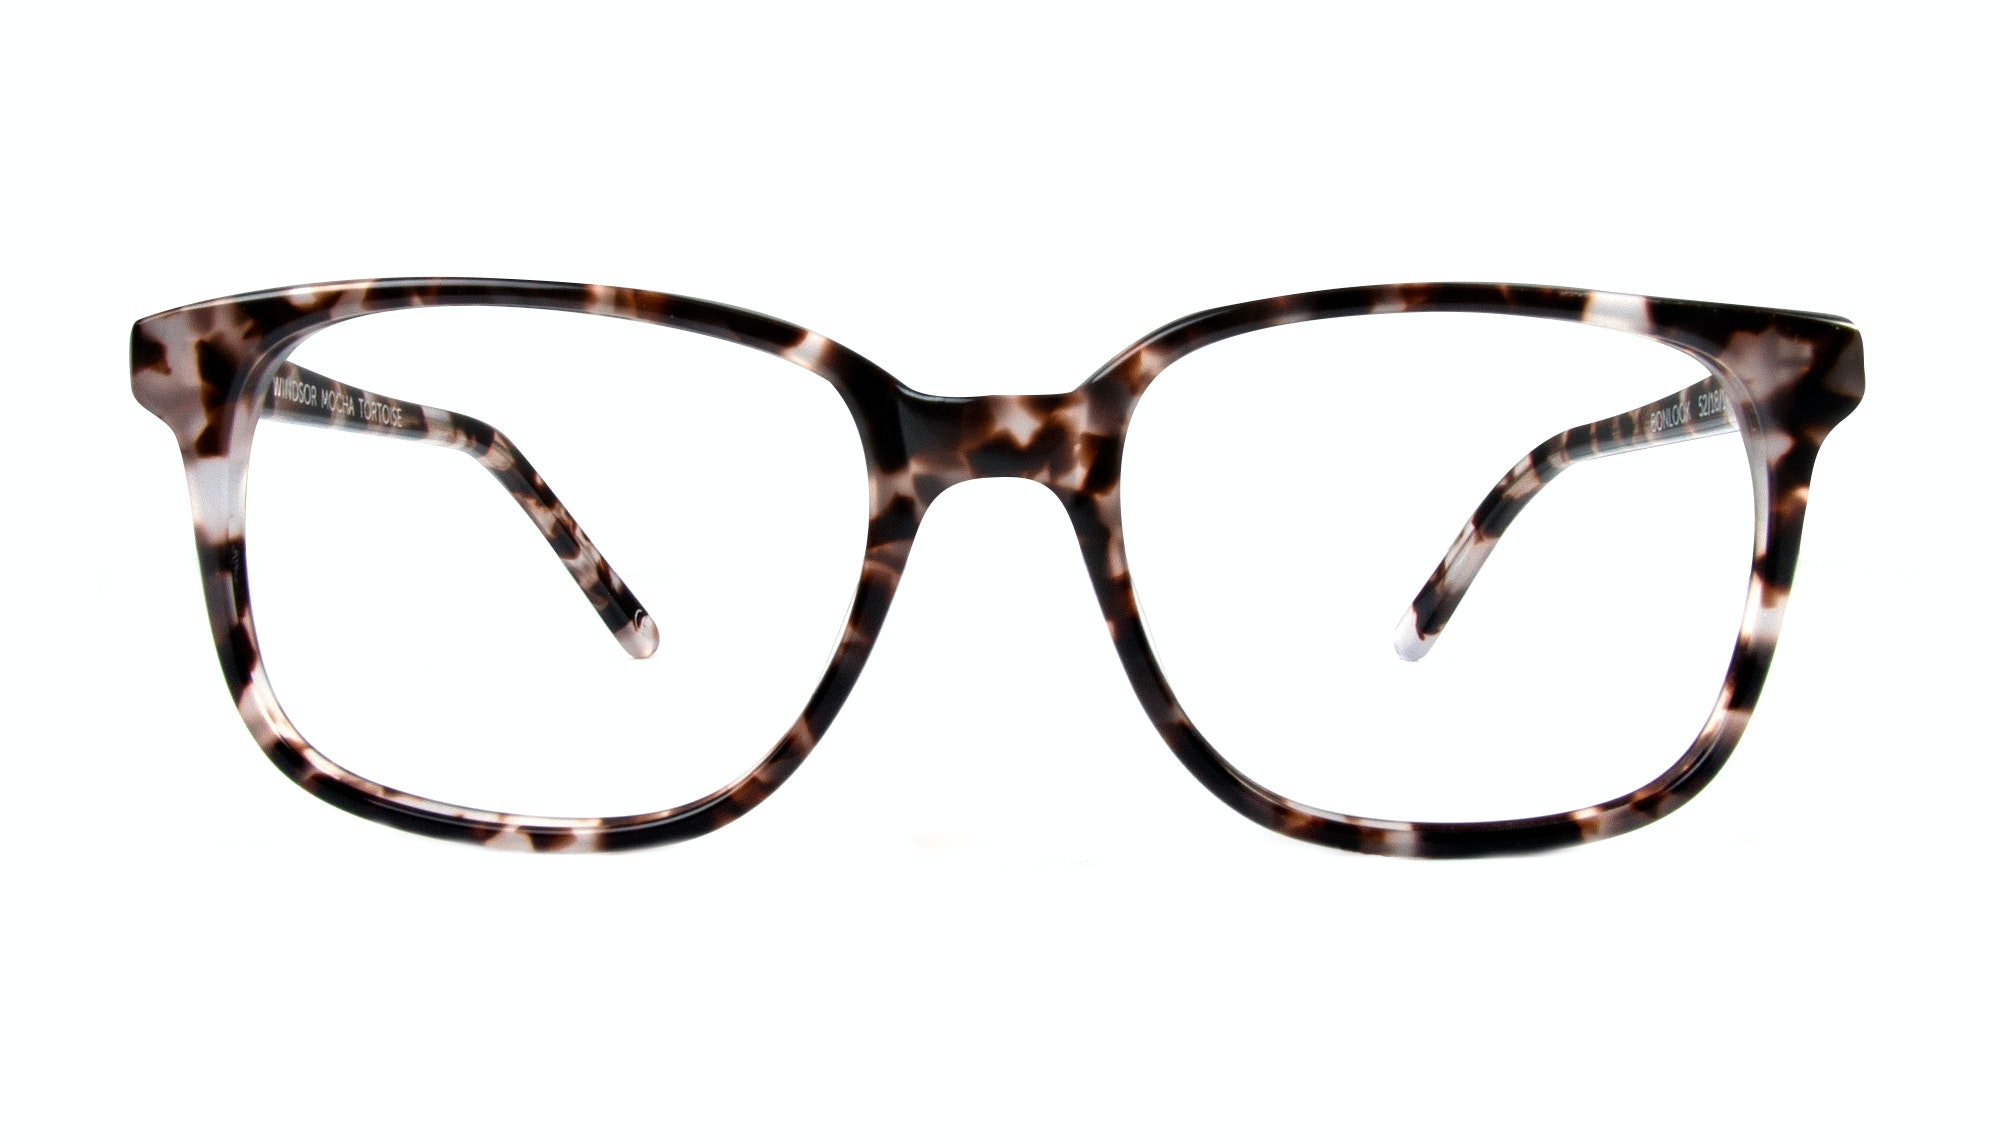 Affordable Fashion Glasses Square Eyeglasses Men Women Windsor Mocha Tortoise Front